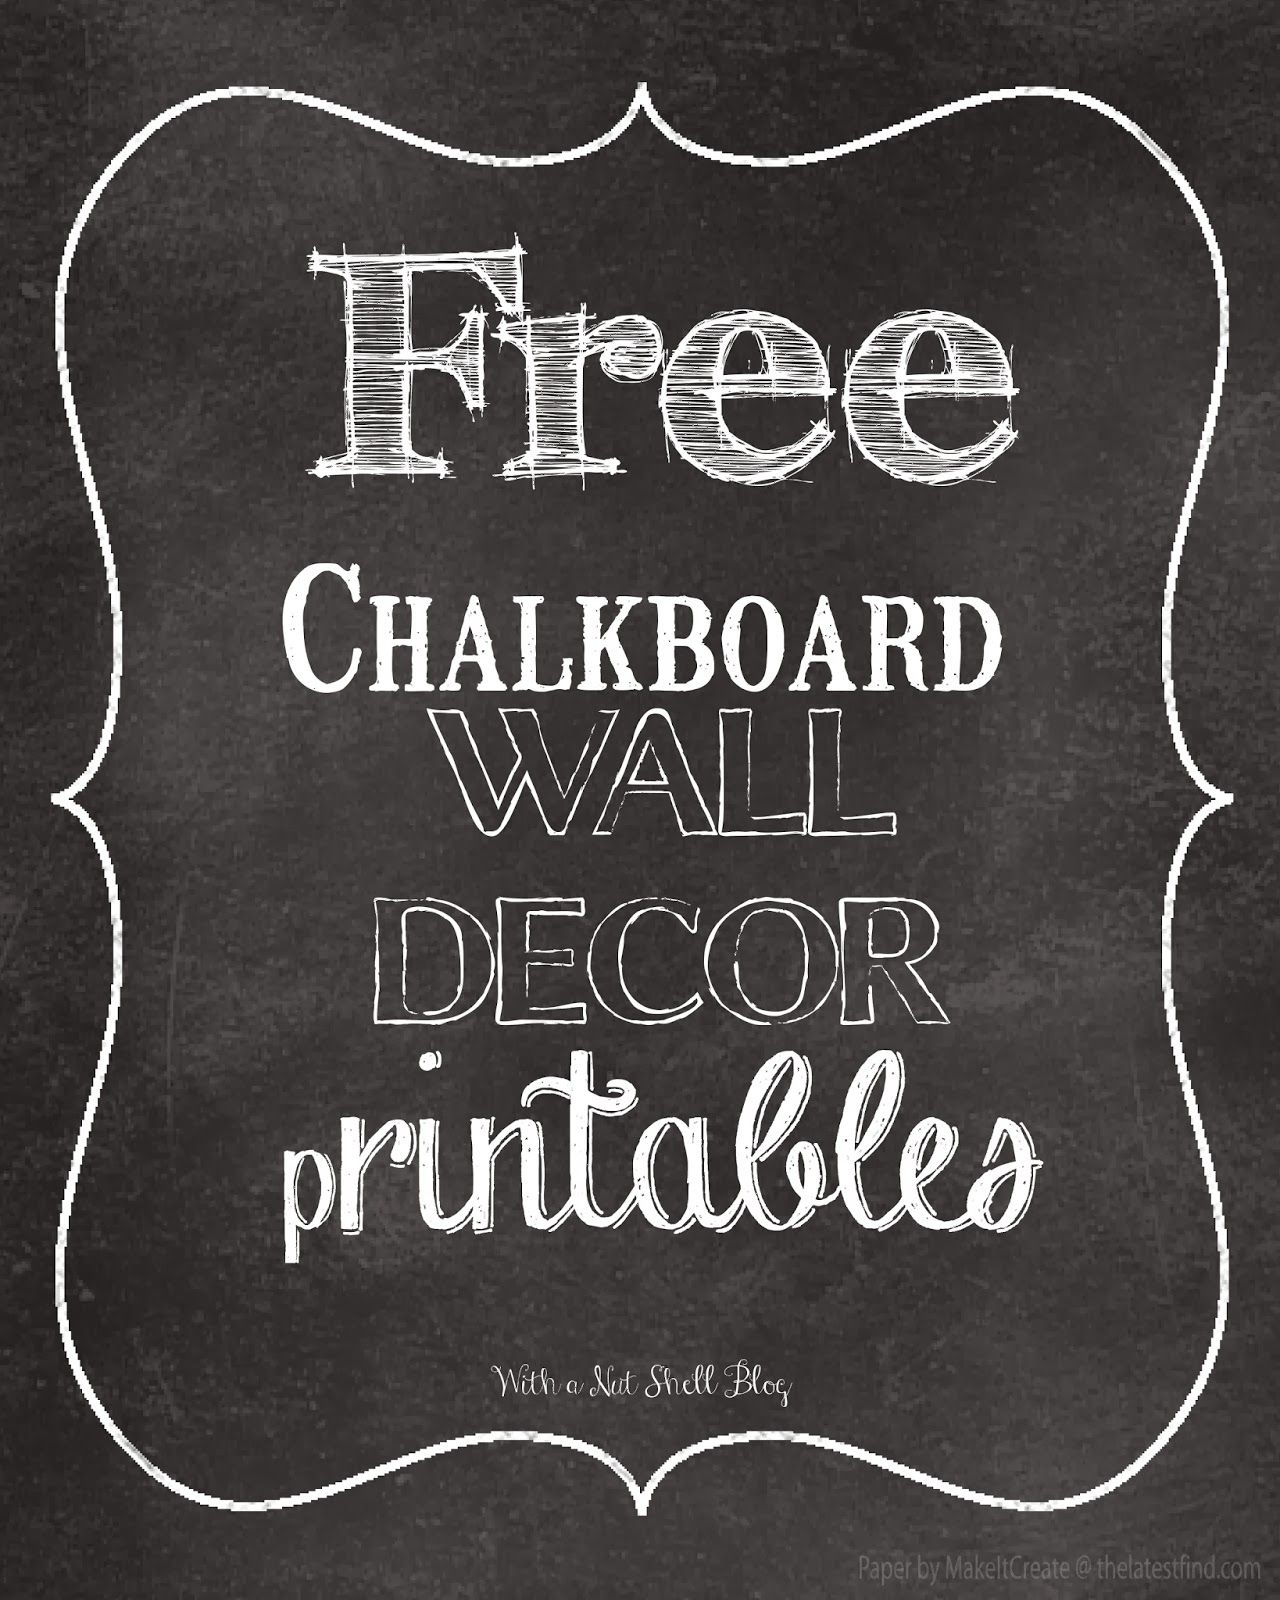 With a nut shell tons of chalkboard wall decor free printables with a nut shell tons of chalkboard wall decor free printables amipublicfo Gallery